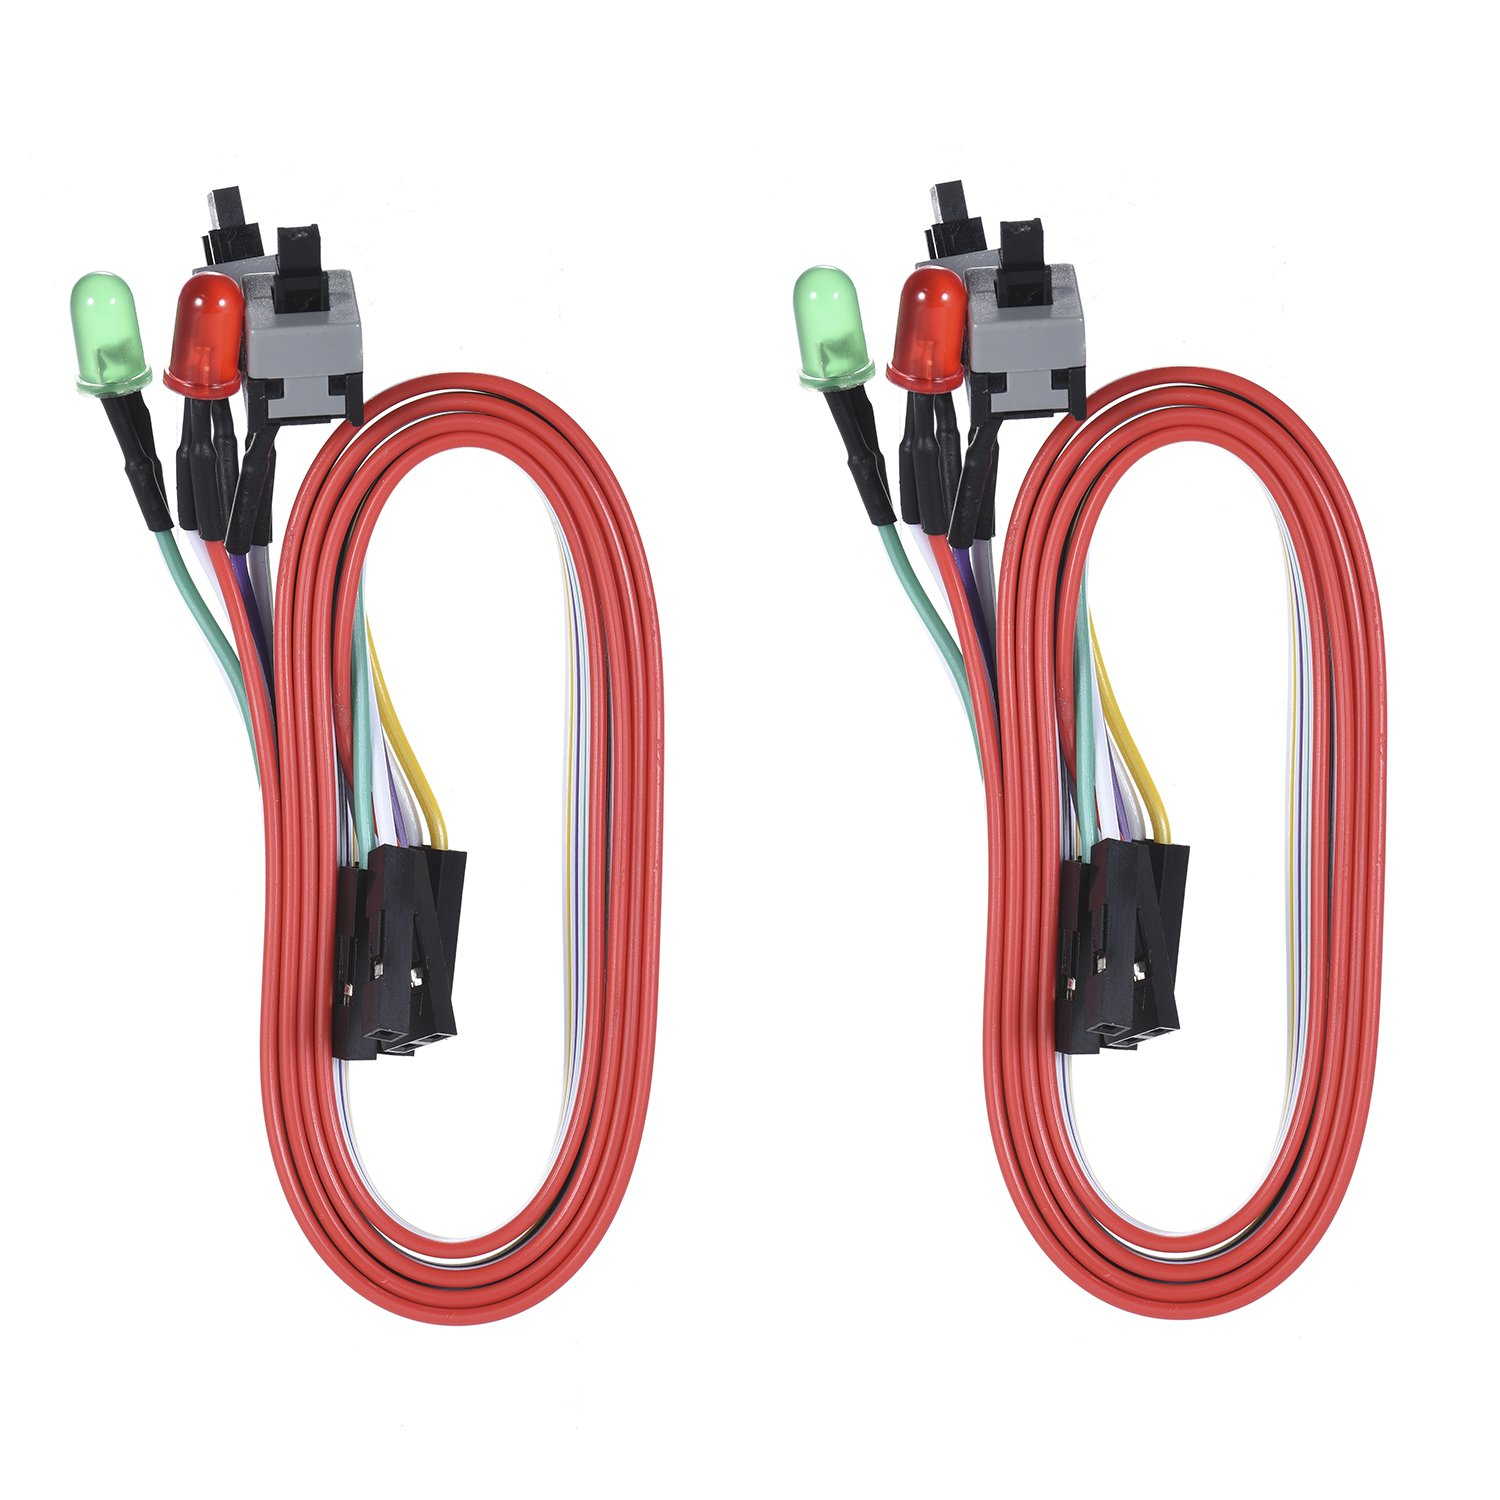 Warmstor 2-Pack Computer Case LED Light Red Green ATX Power Supply Reset HDD Switch Cable 27-inch Long ATX Case Front Bezel Wire Kit by Warmstor (Image #2)